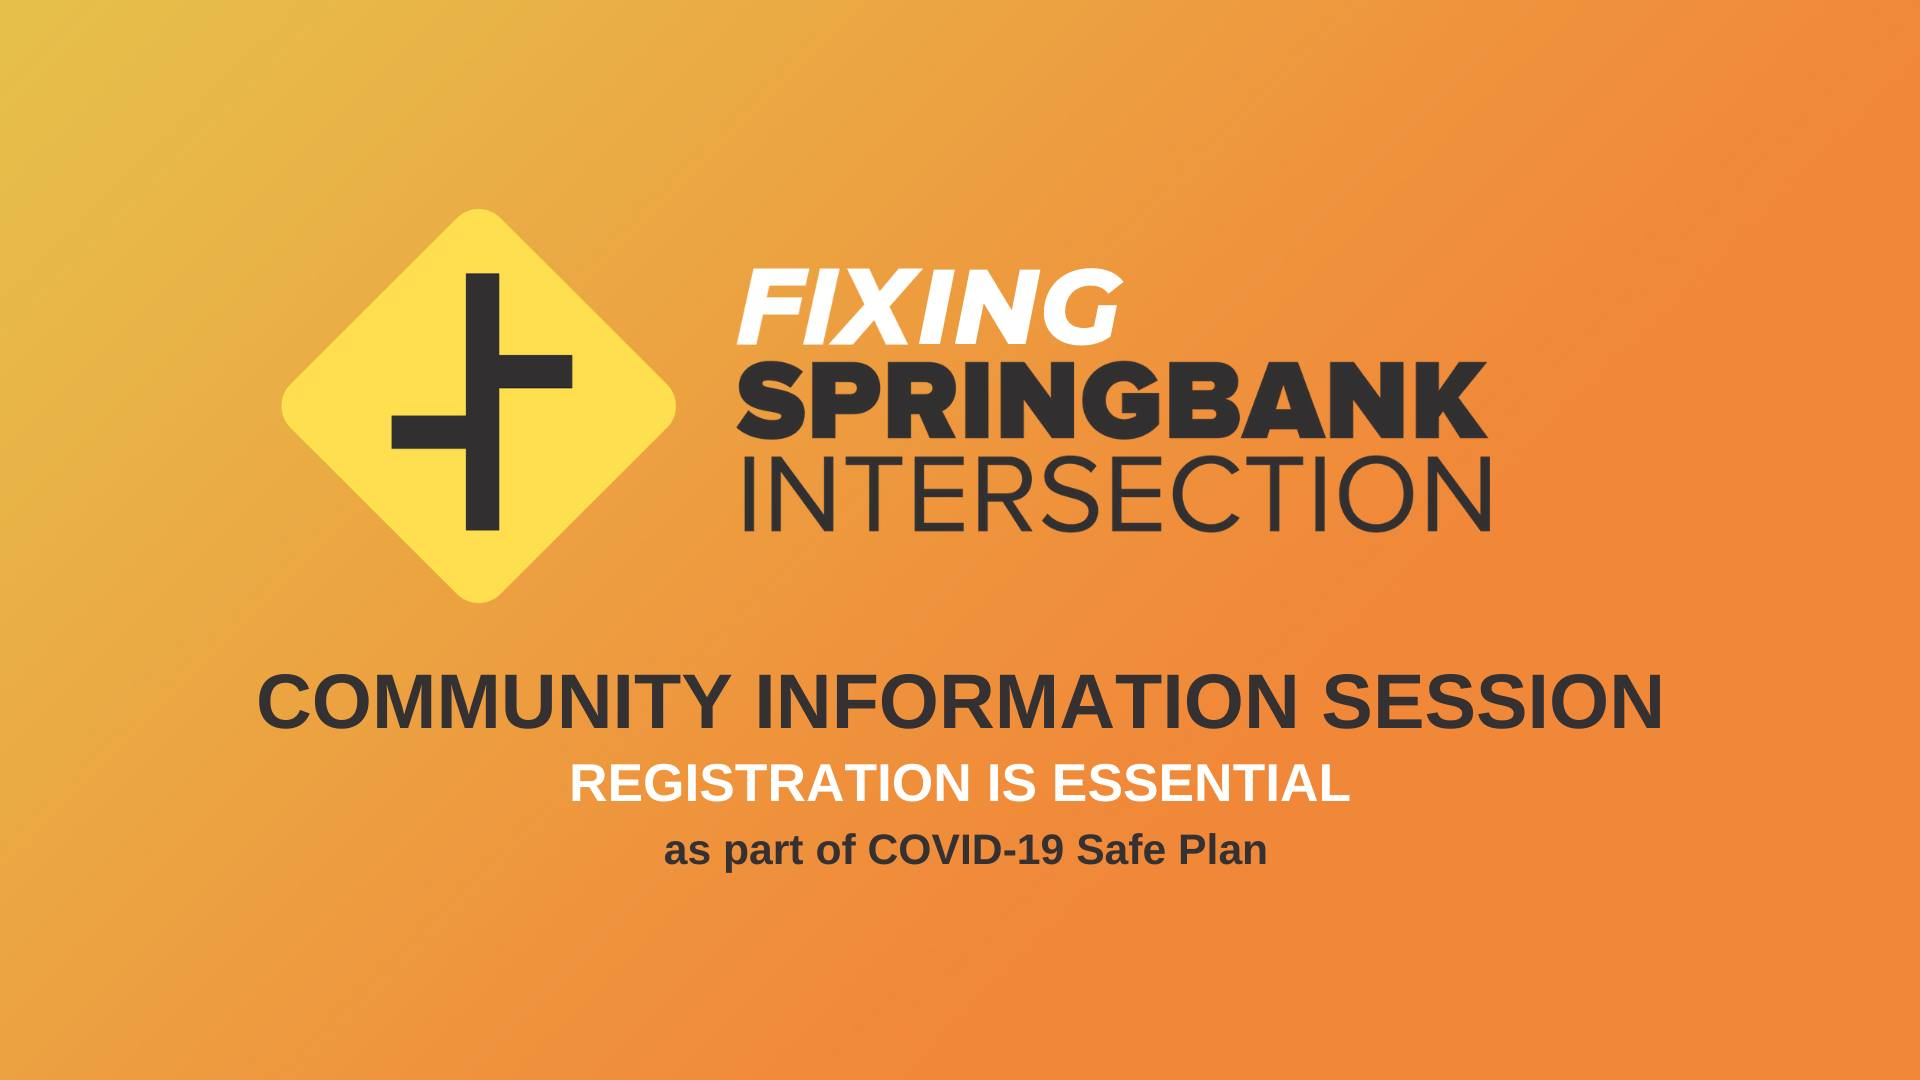 Springbank Intersection Upgrade Community Info Session